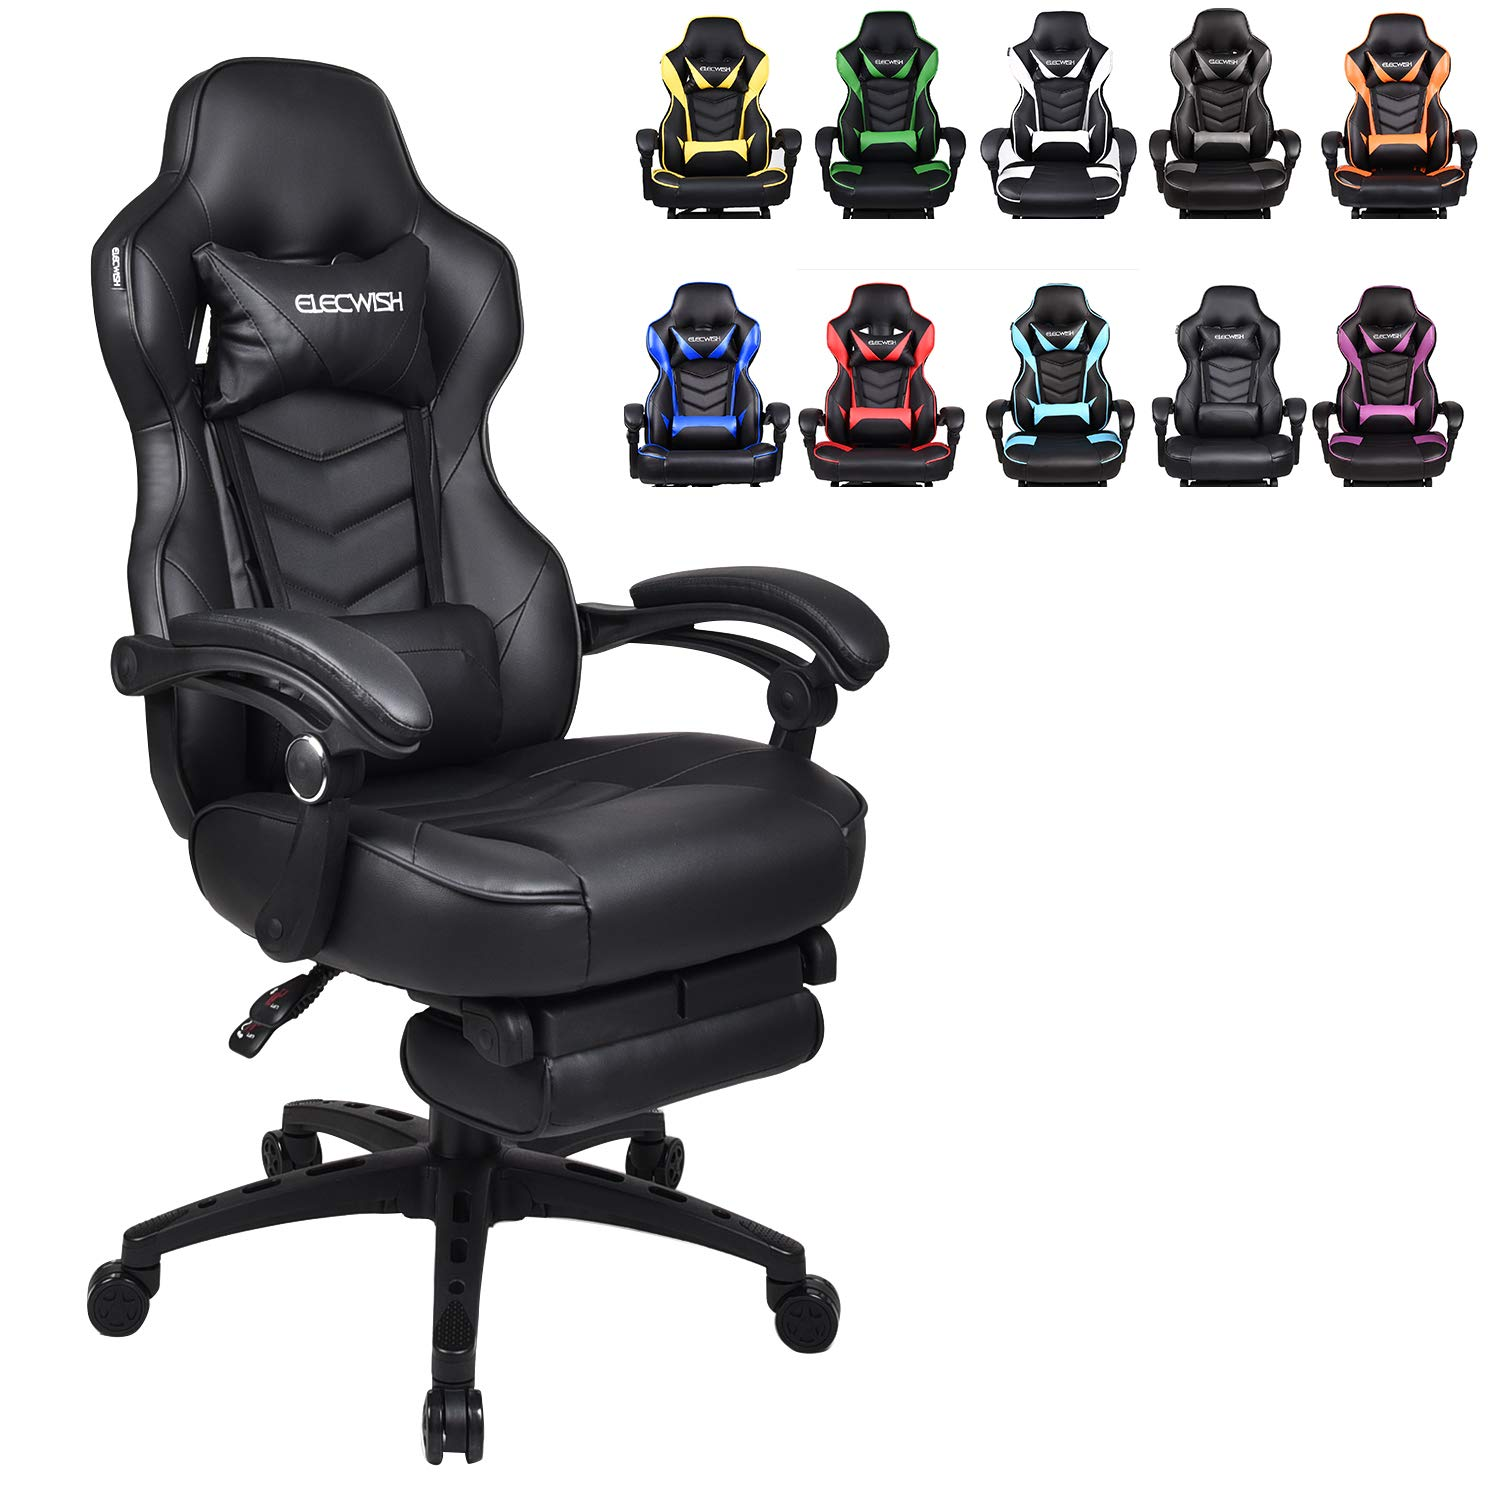 Picture of: Racing Video Gaming Chair High Back Large Size Ergonomic Adjustable Swivel Reclining Executive Computer Gaming Chair With Headrest And Lumbar Support Pu Leather Executive Office Chair Black